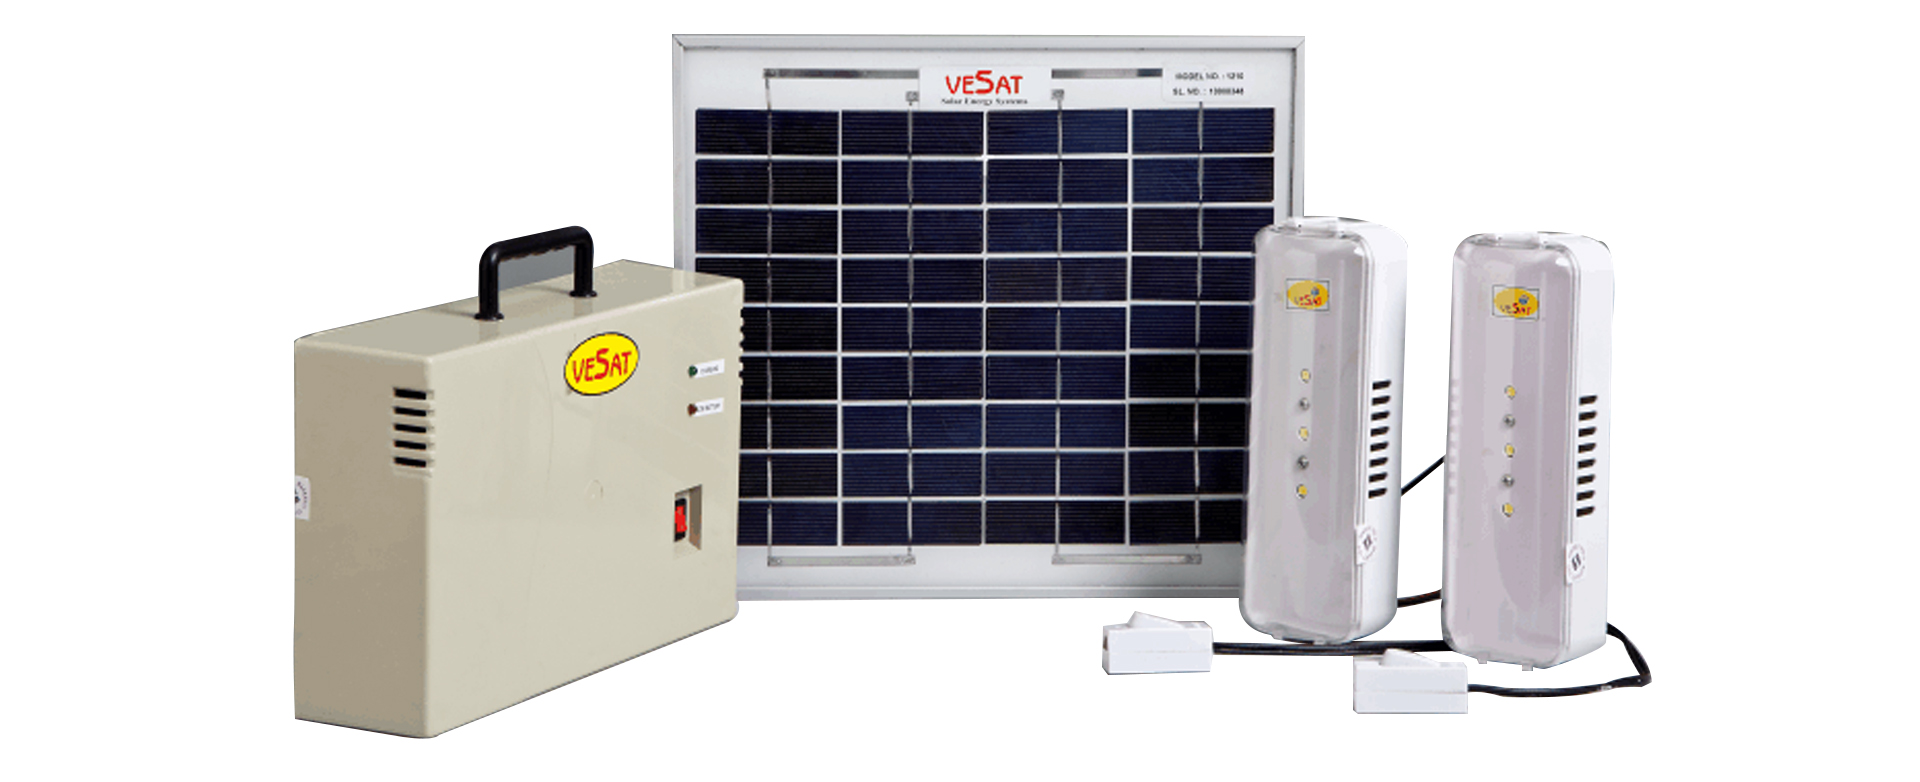 vesat solar power inverter